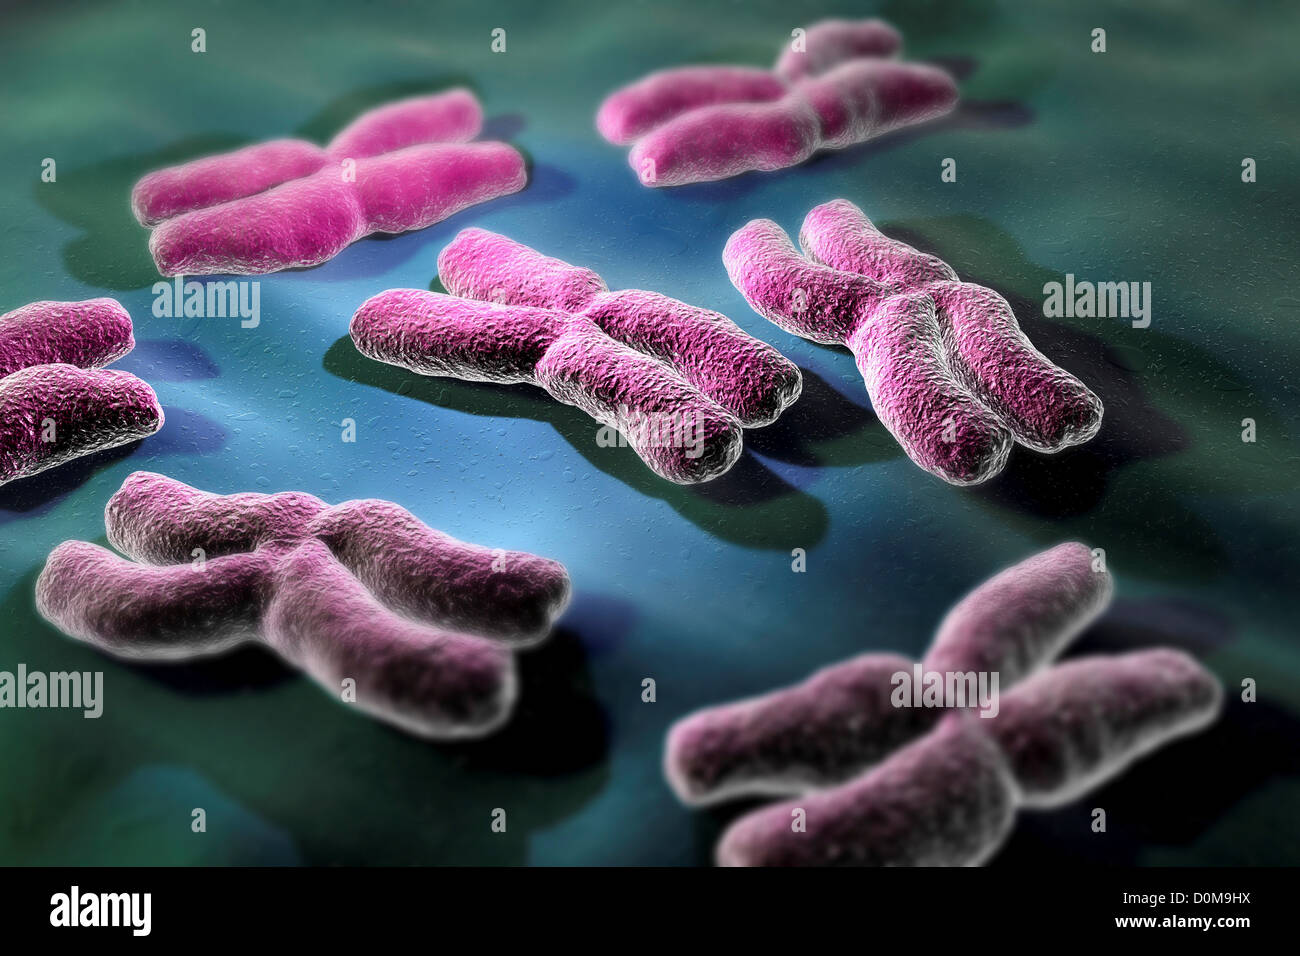 Conceptual depiction of human chromosomes. - Stock Image